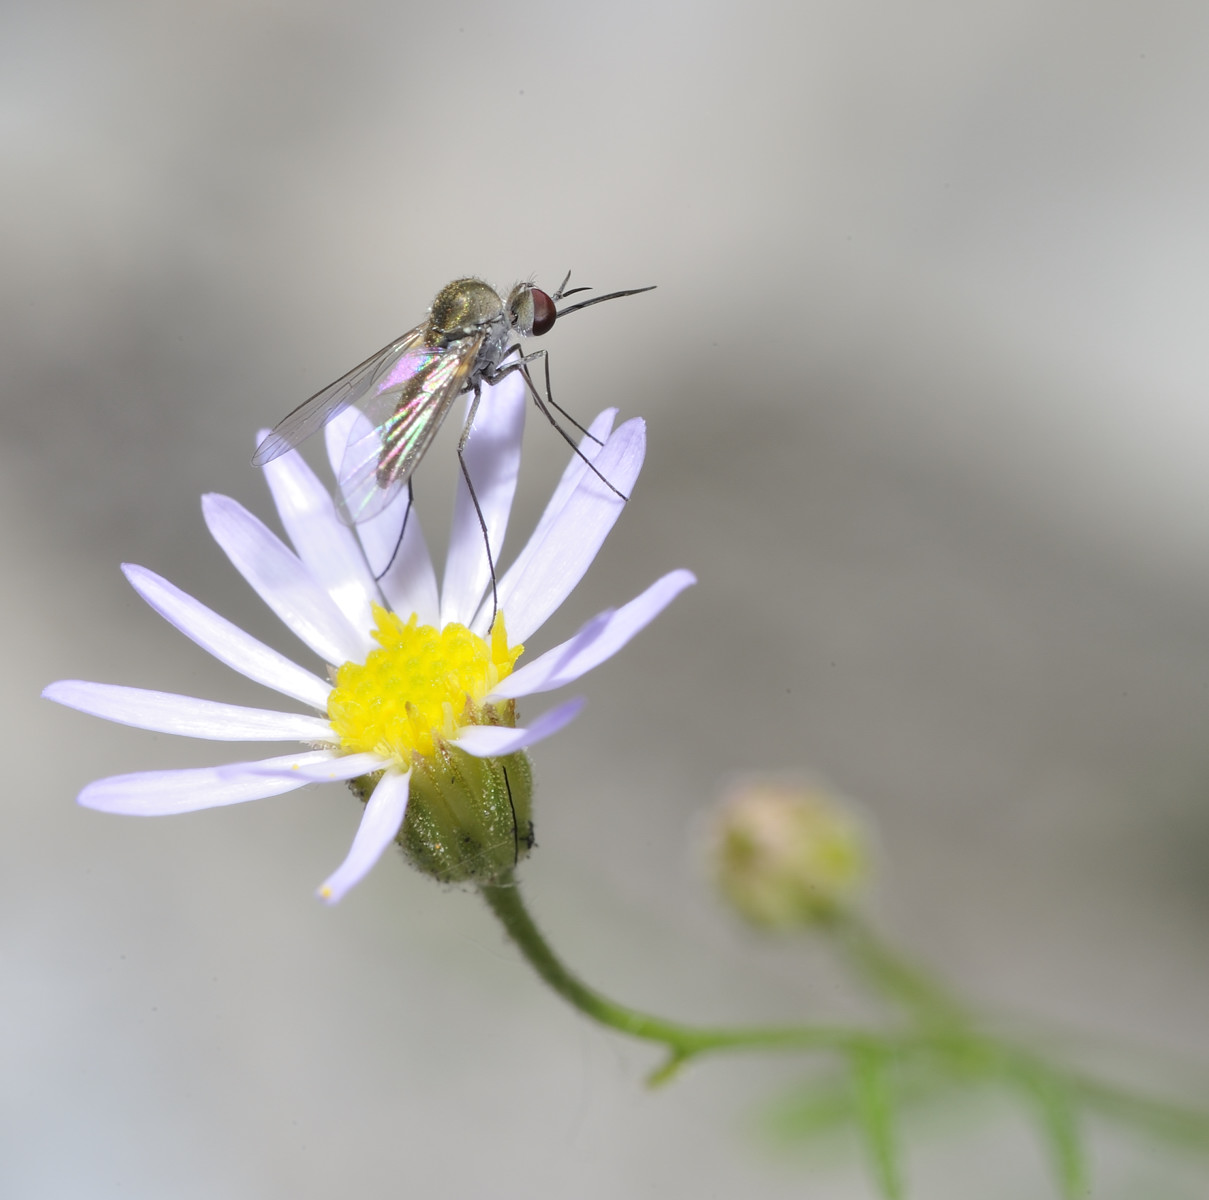 Very Tiny Bee Fly (Geron calvus, in the Bombyliidae Family) Alights on Mountain Daisy